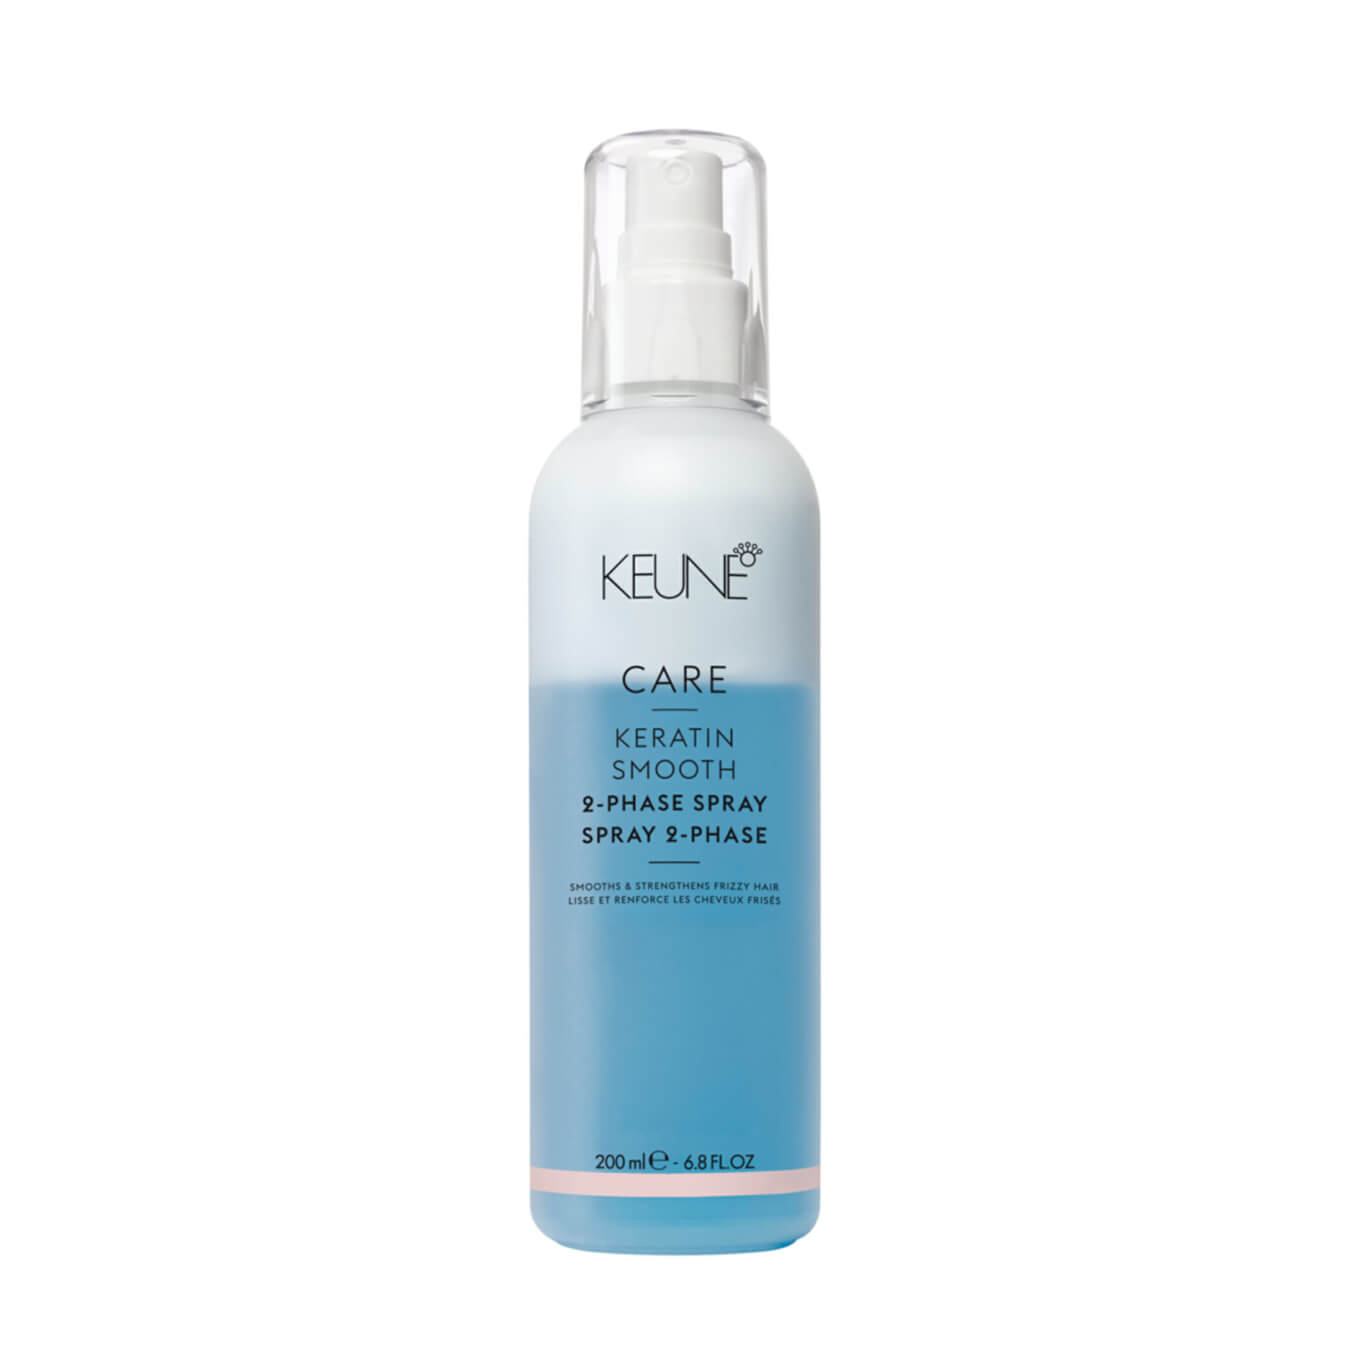 Kauf Keune Care Keratin Smooth 2 Phase Spray 200ml